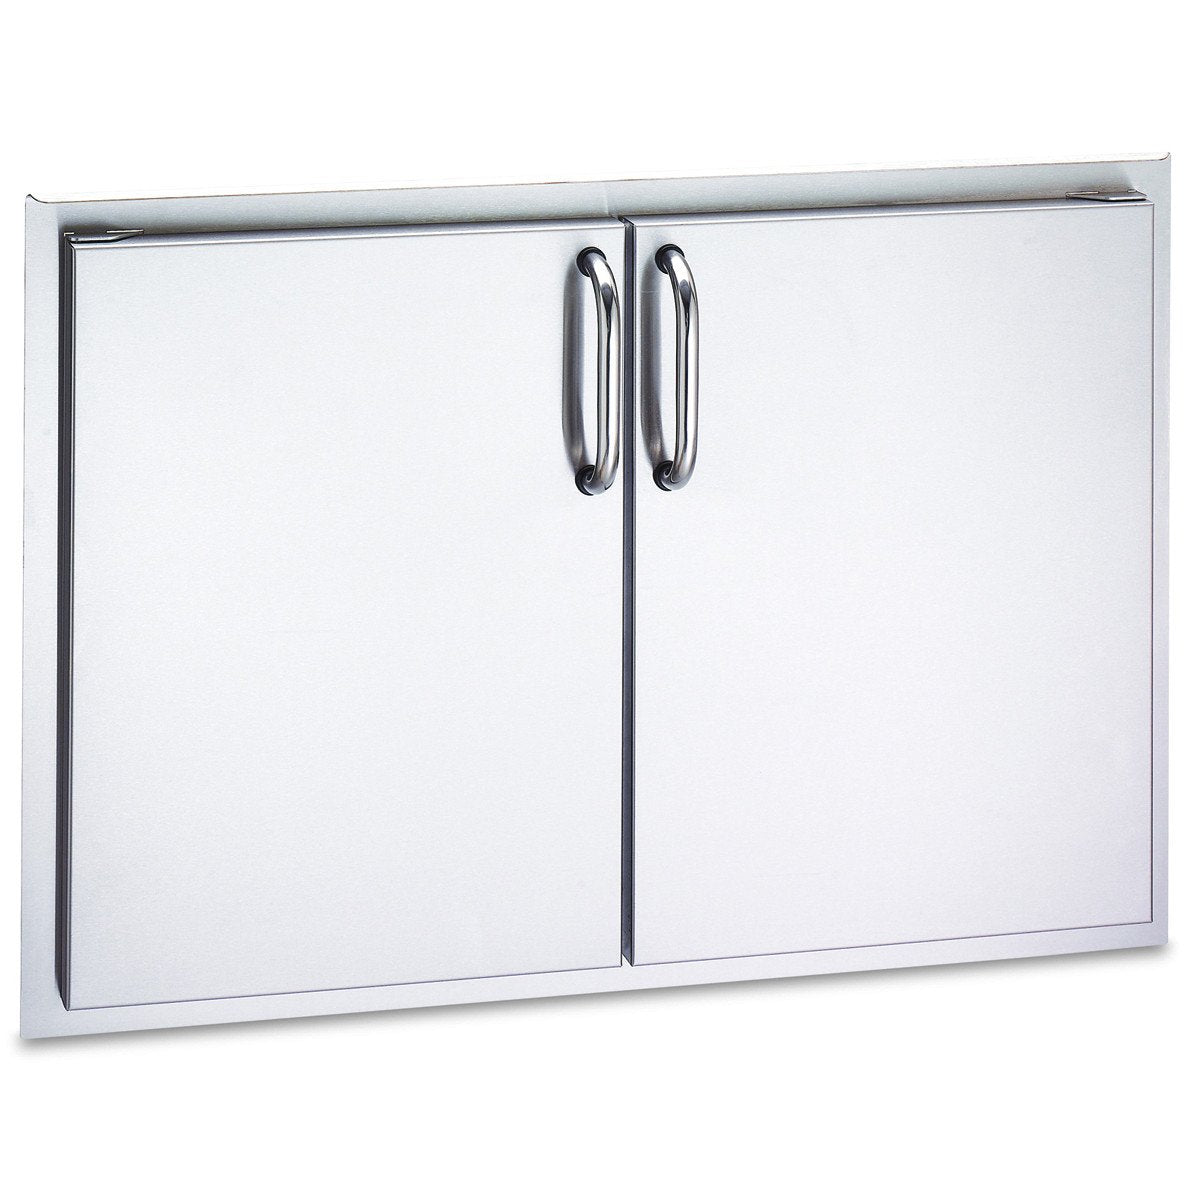 American Outdoor Grill 20 X 30 Stainless Double Access Door